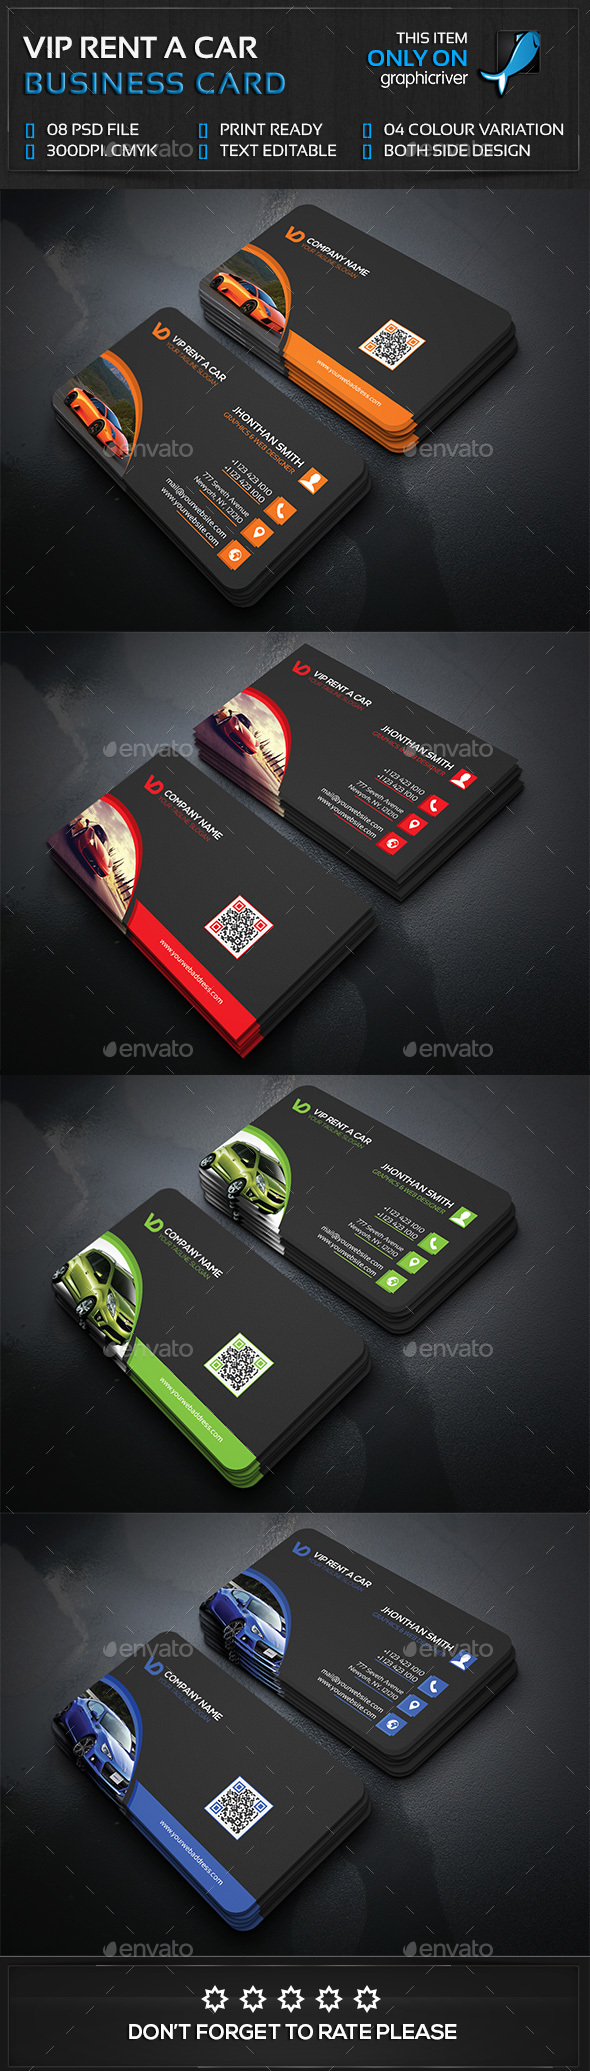 Rent a car business card template psd design download http rent a car business card template psd design download httpgraphicriveritemrent a car business card13987529refksioks colourmoves